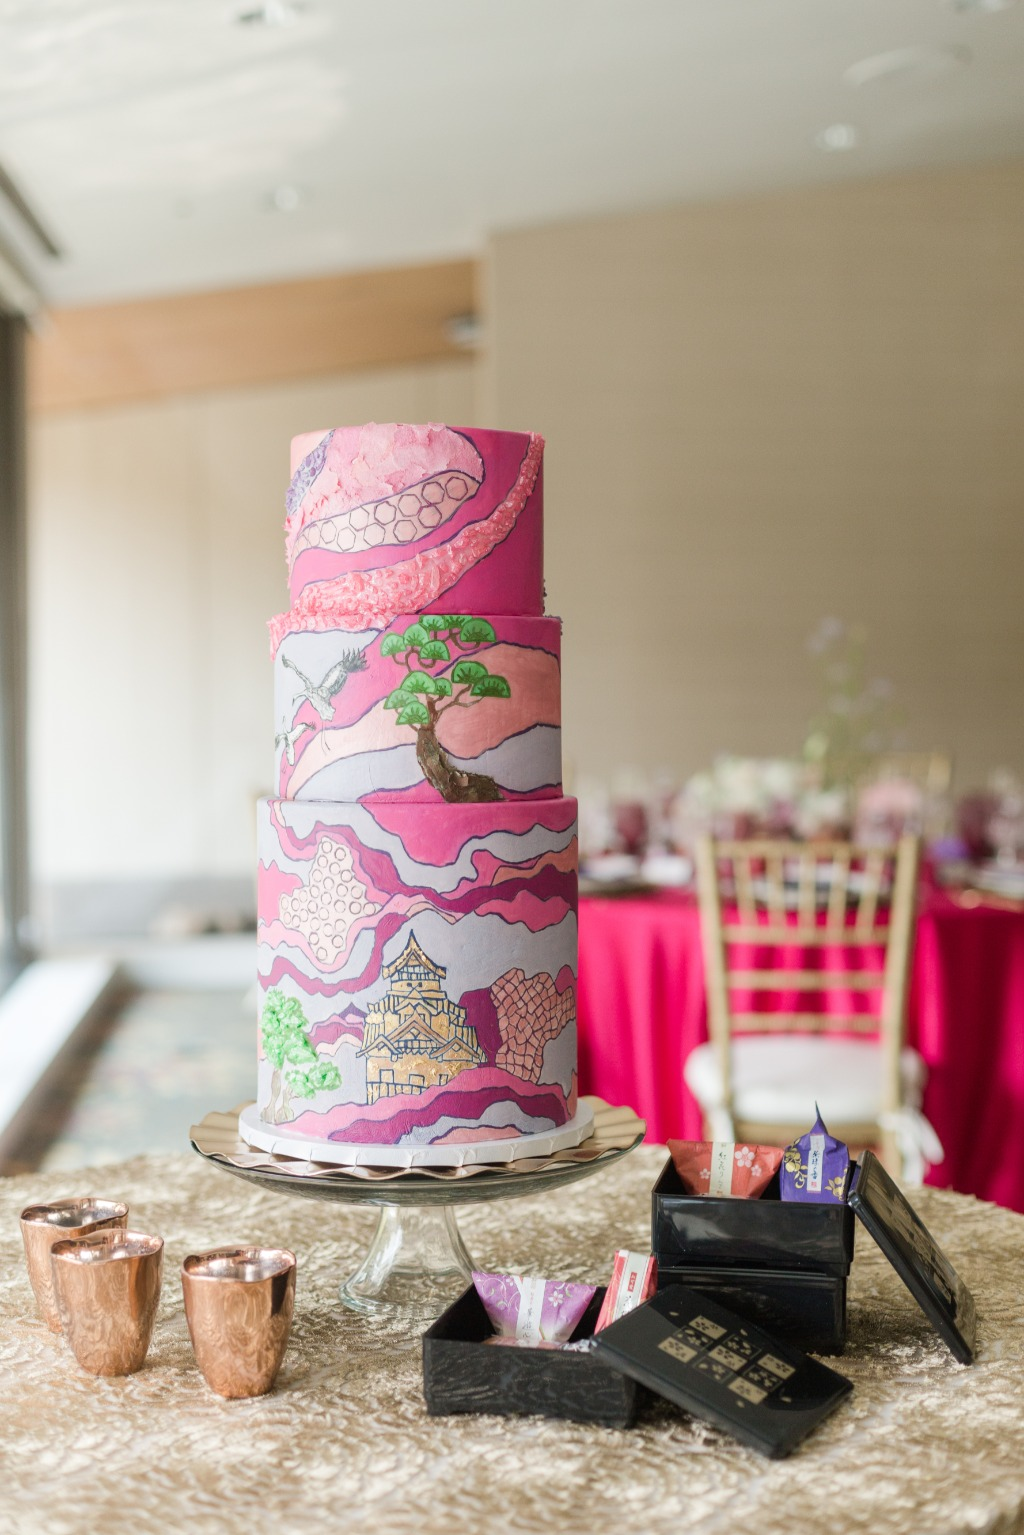 Looking for something different in your wedding cake? This beautiful cake was painted with abstract art to bring in touches of the